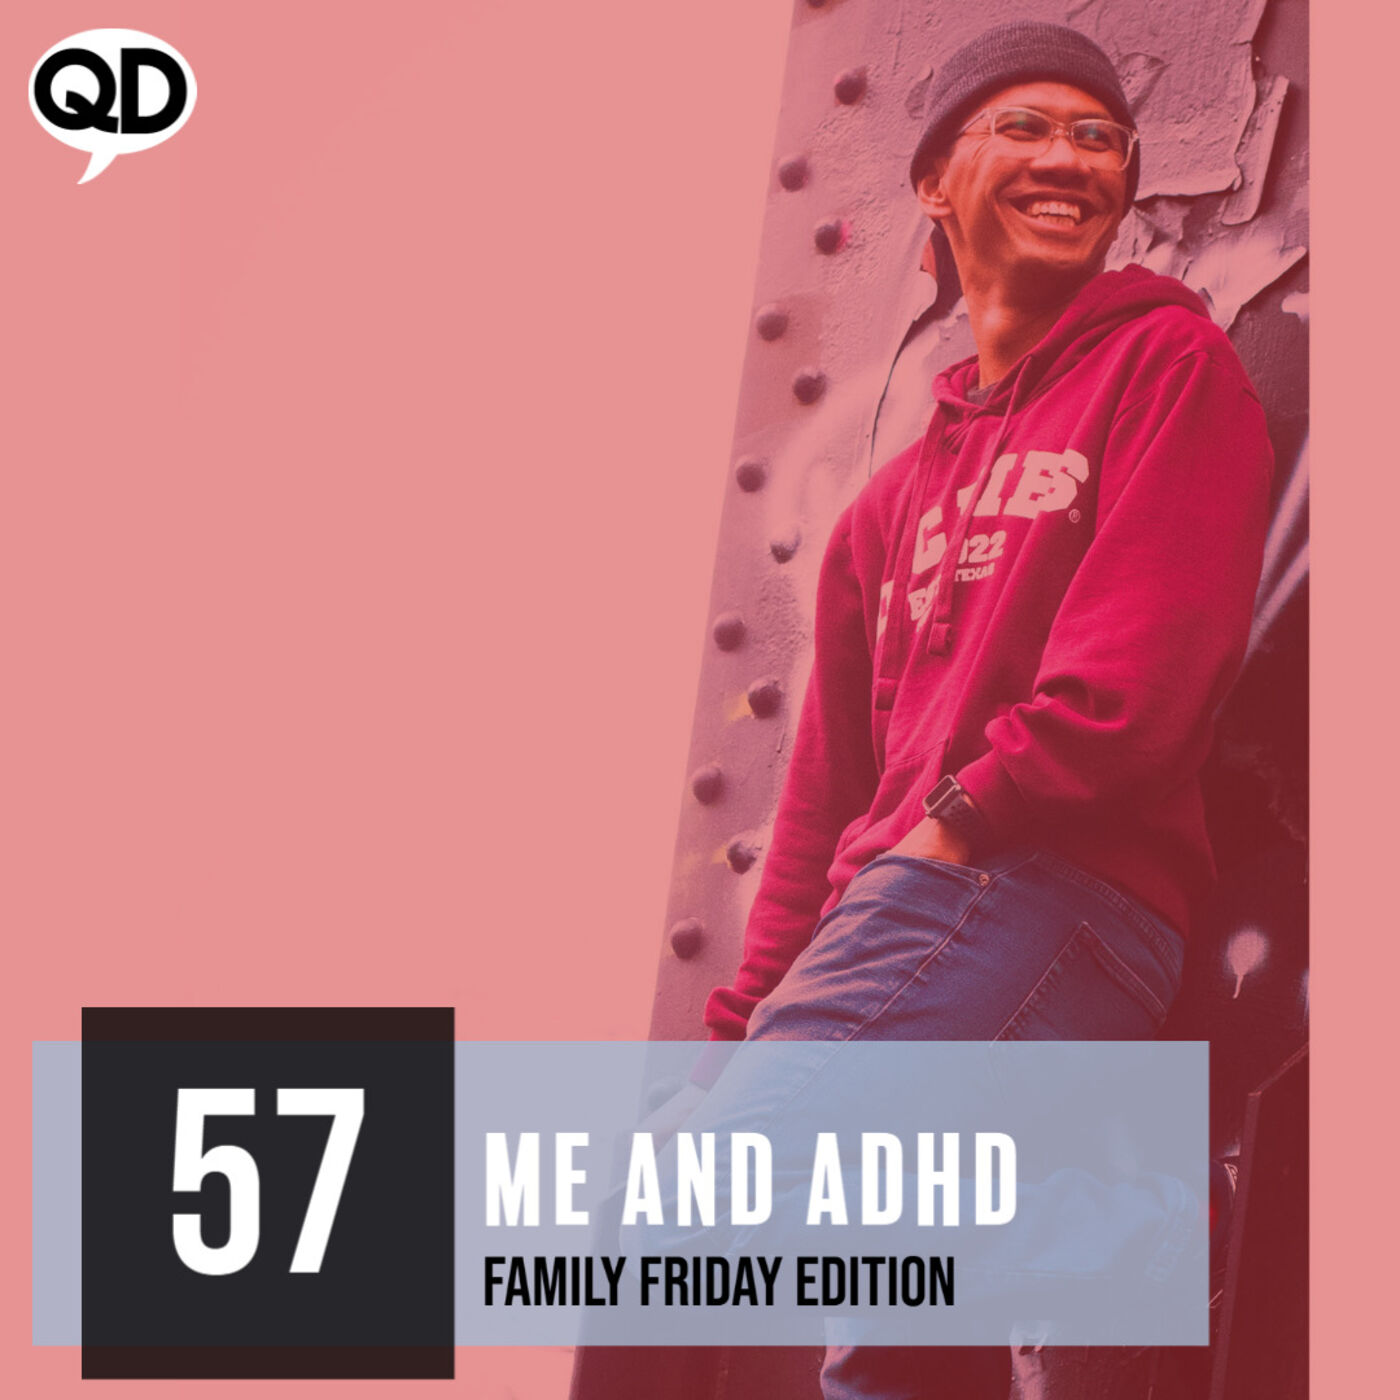 (FF) Me and ADHD